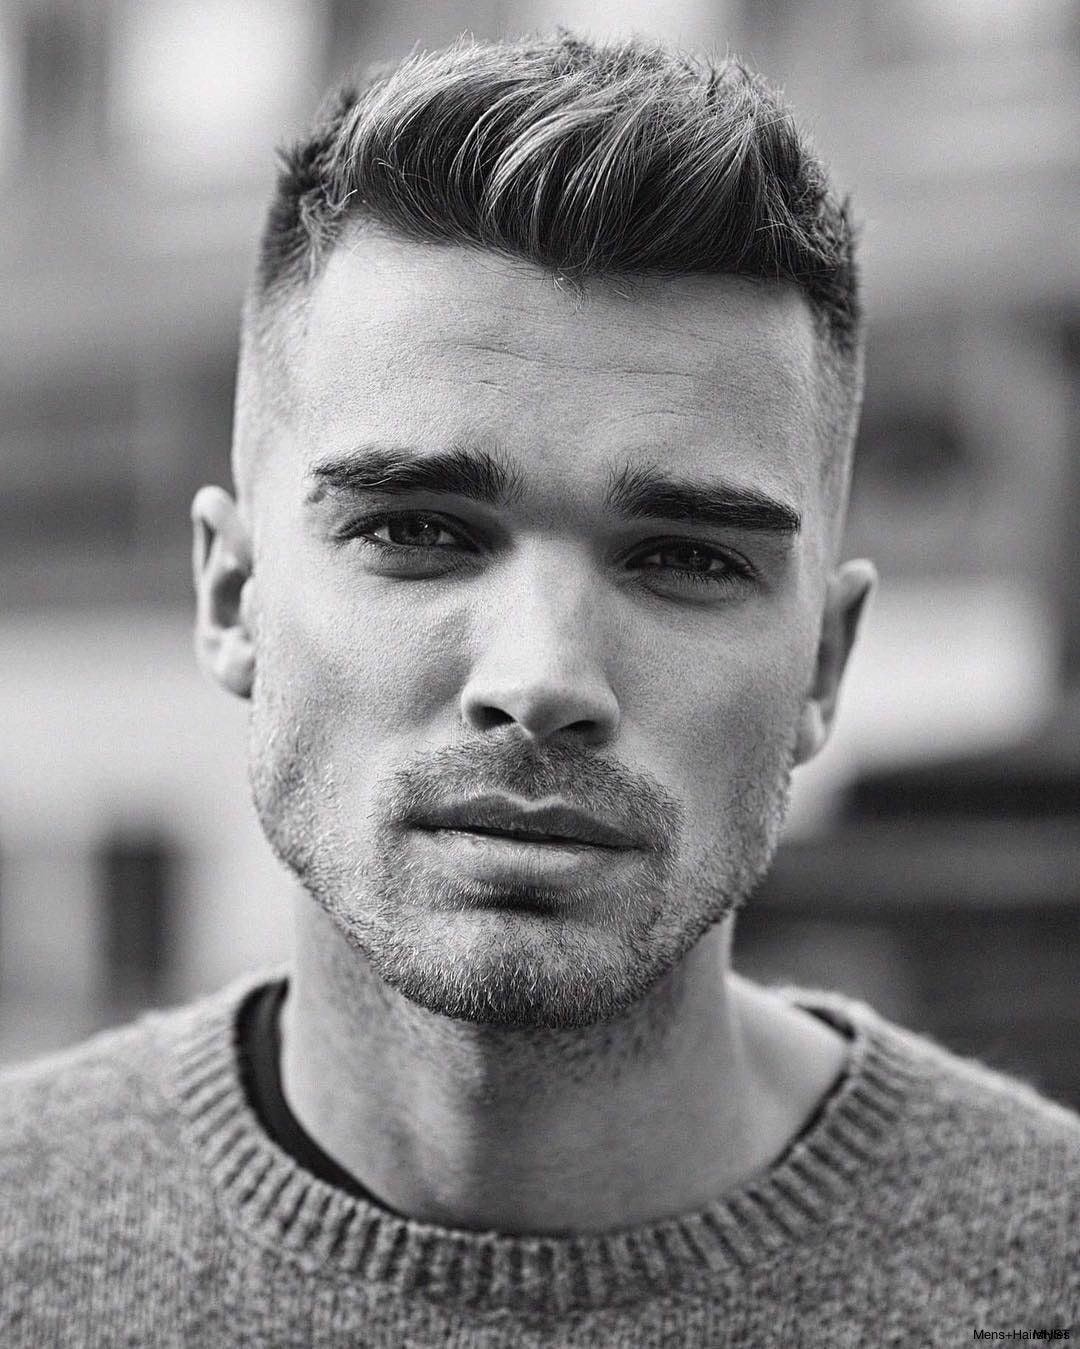 Flattering Bang Hairstyles for Men full size of men hairstyles:flattering epwyozz #erkeksaçmodelleri